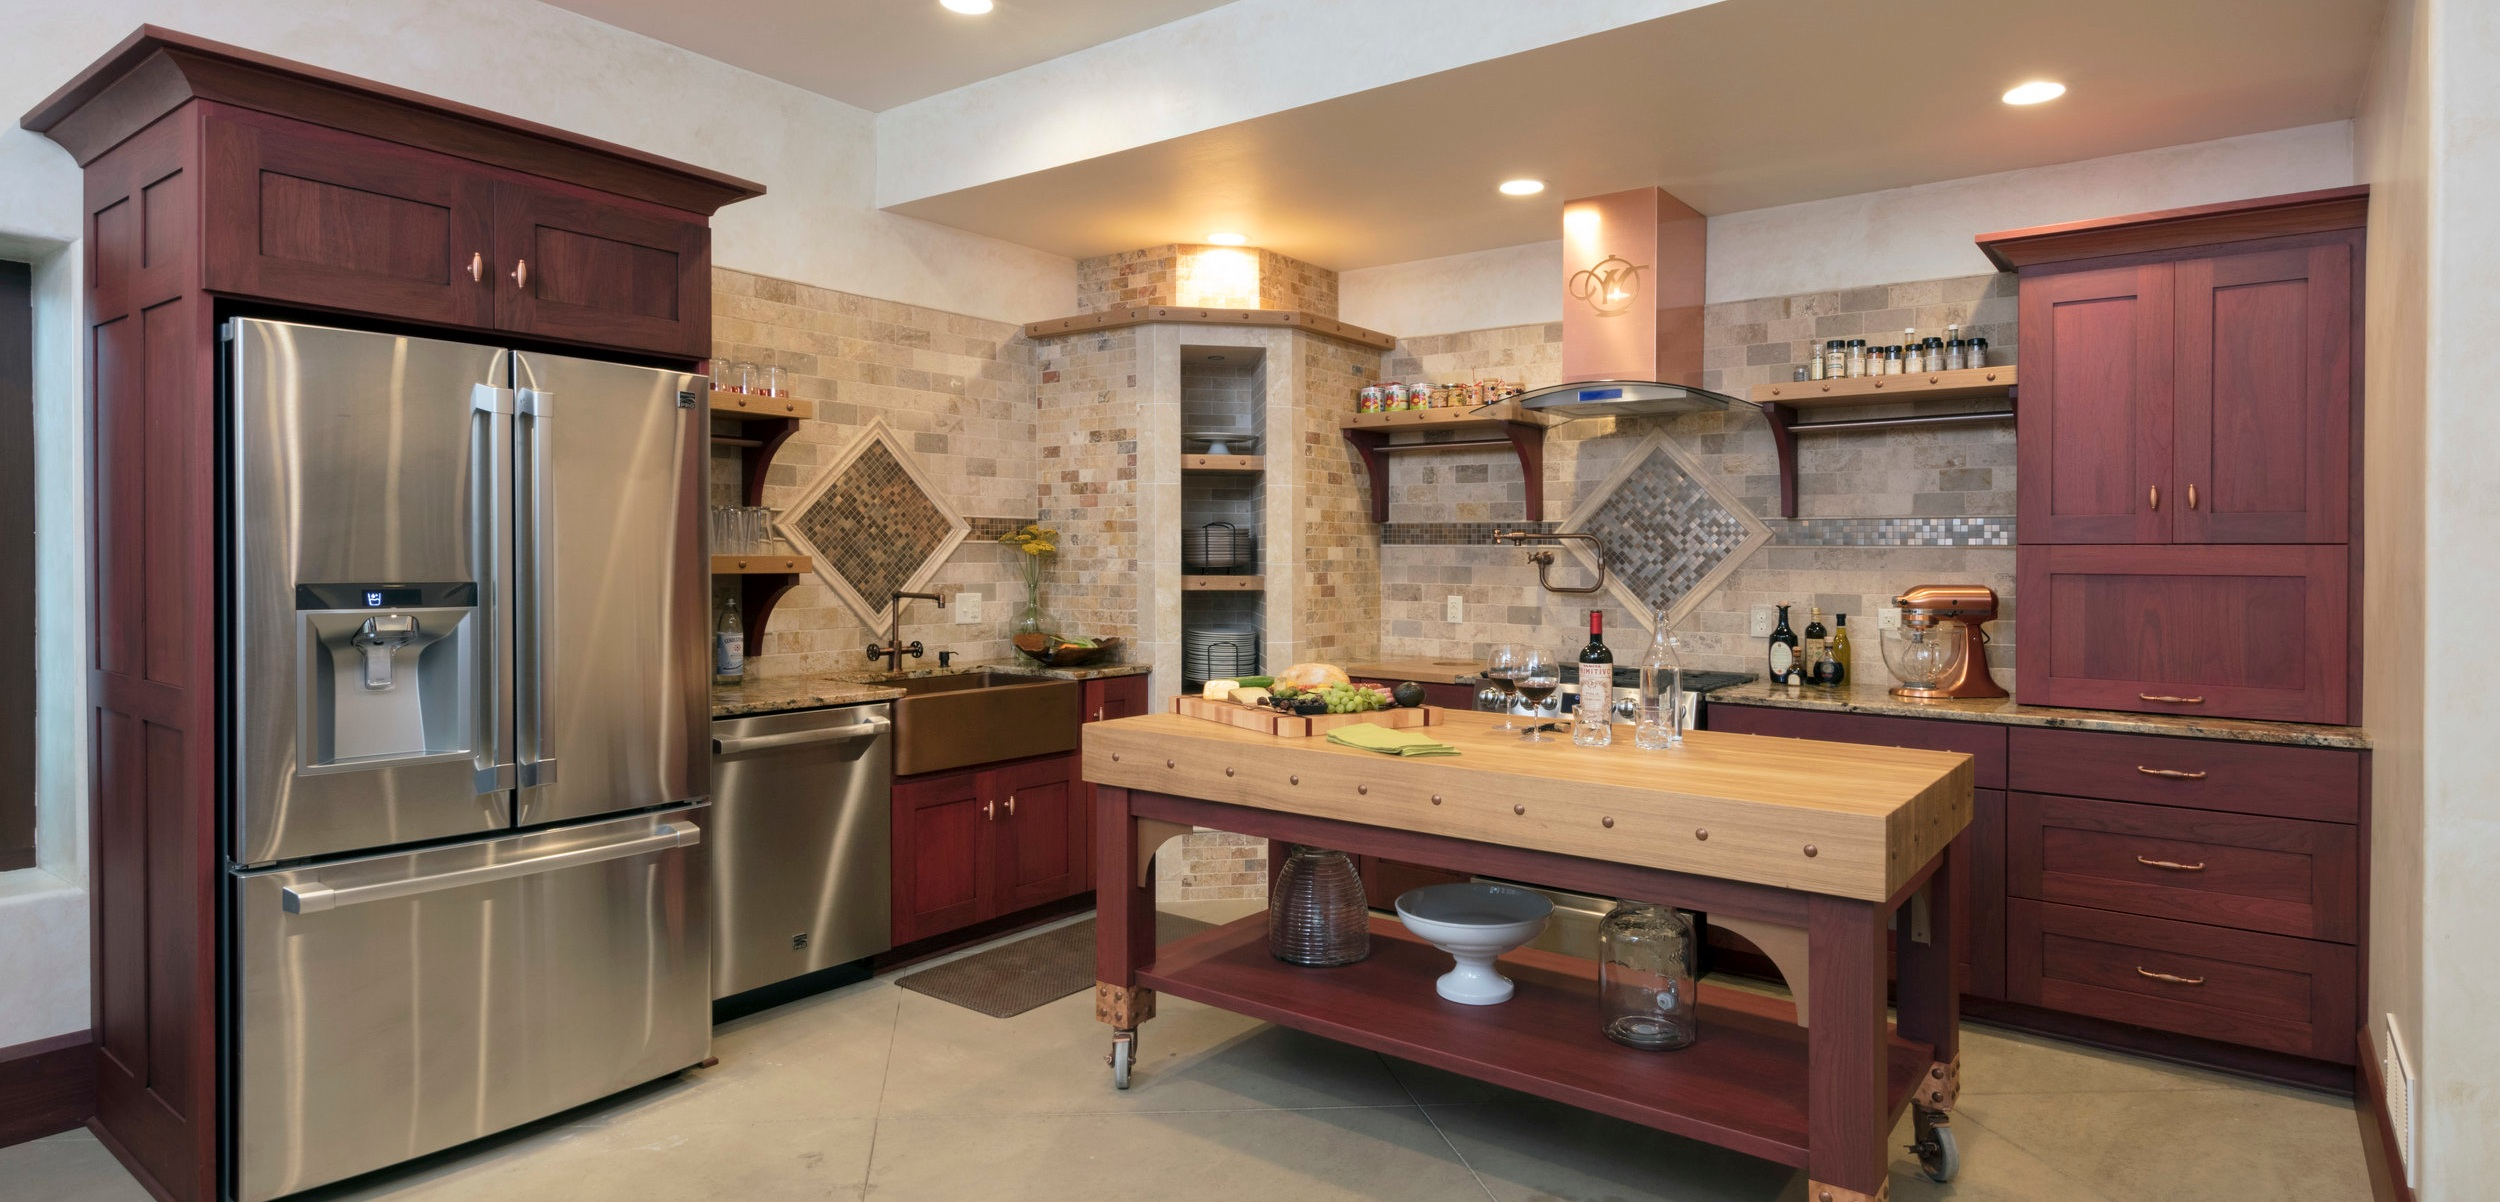 rustic, organic textures and materials meet to give this kitchen an inviting, romantic feel that welcomes everyone into the kitchen. THE RICH COLORS OF THE HARDWOOD OFFSET THE DELICATE SHADES IN THE TILE, CREATing A WARMING FEEL FOR THE SOFTER WOOD SURFACES, CLEAN REFLECTIVE METALS, AND COZY LIGHTING.